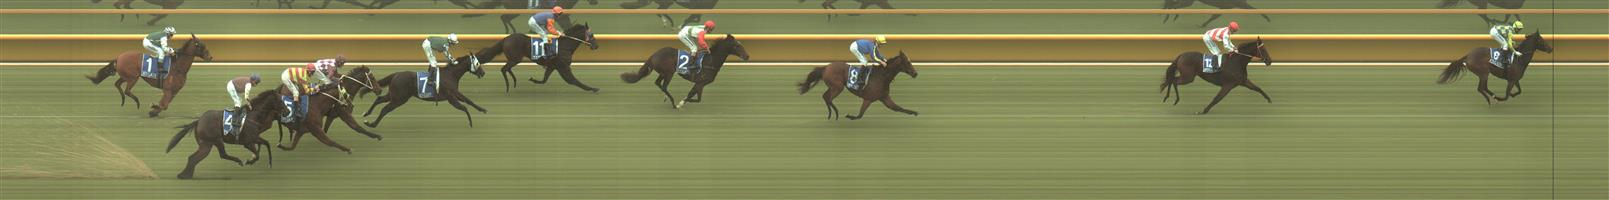 SEYMOUR Race 2 No. 8 Fancy Liquor @ $3.90 (1.5 UNITS WIN)   Result :  3rd  at SP $5.00. Was behind the leader and winner on the turn, but the winner kicked clear on the turn and Fancy Liquor could only box on for third. Outcome -1.50 Units.